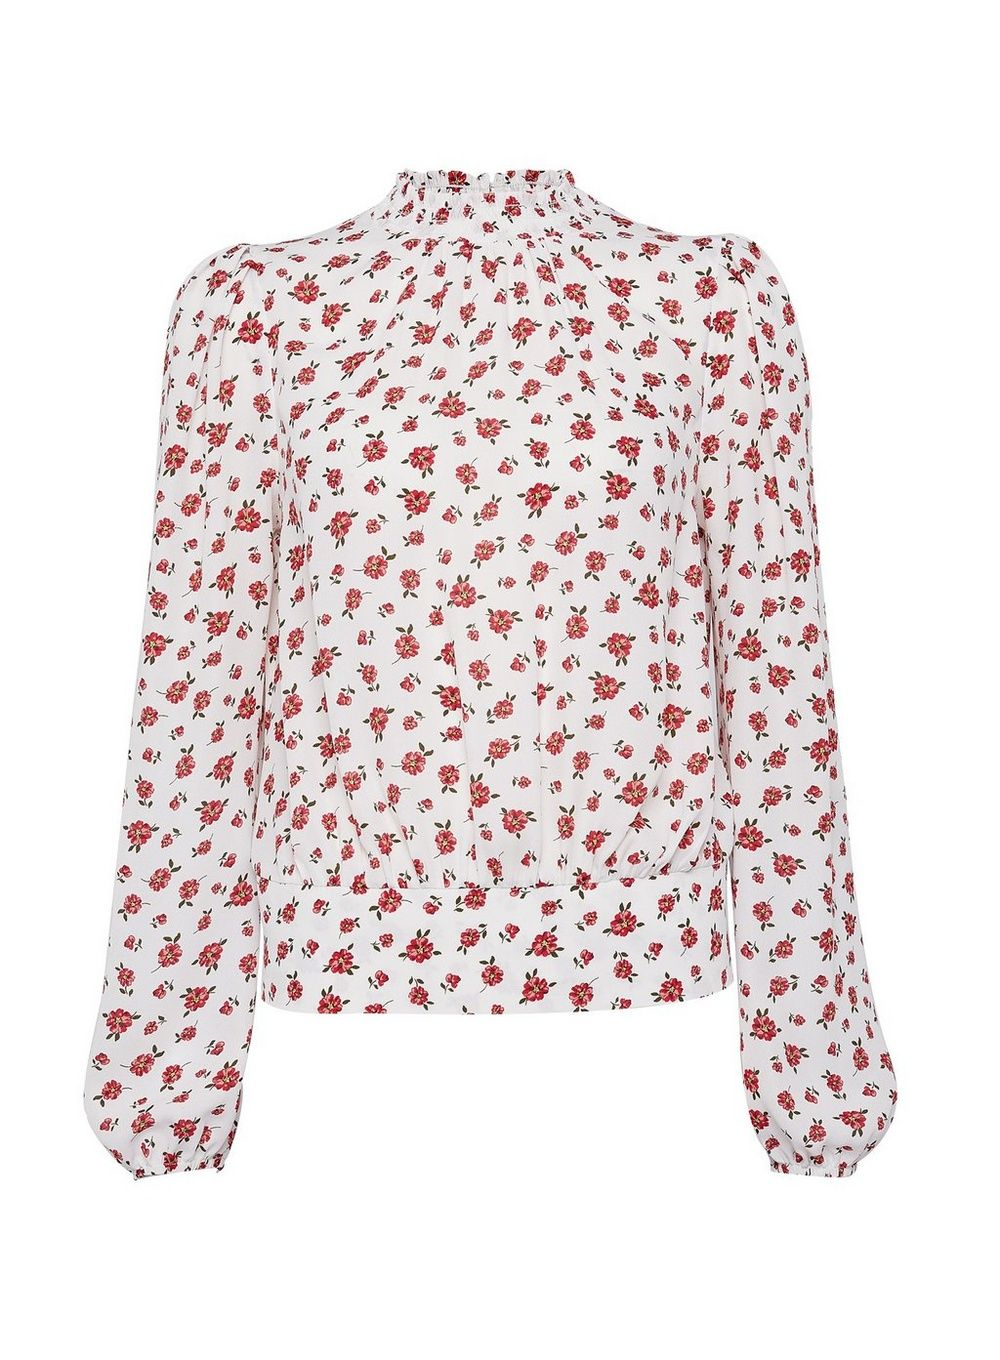 Dorothy Perkins Womens White Colour Ditsy Floral Print Elastic Back Top Blouse